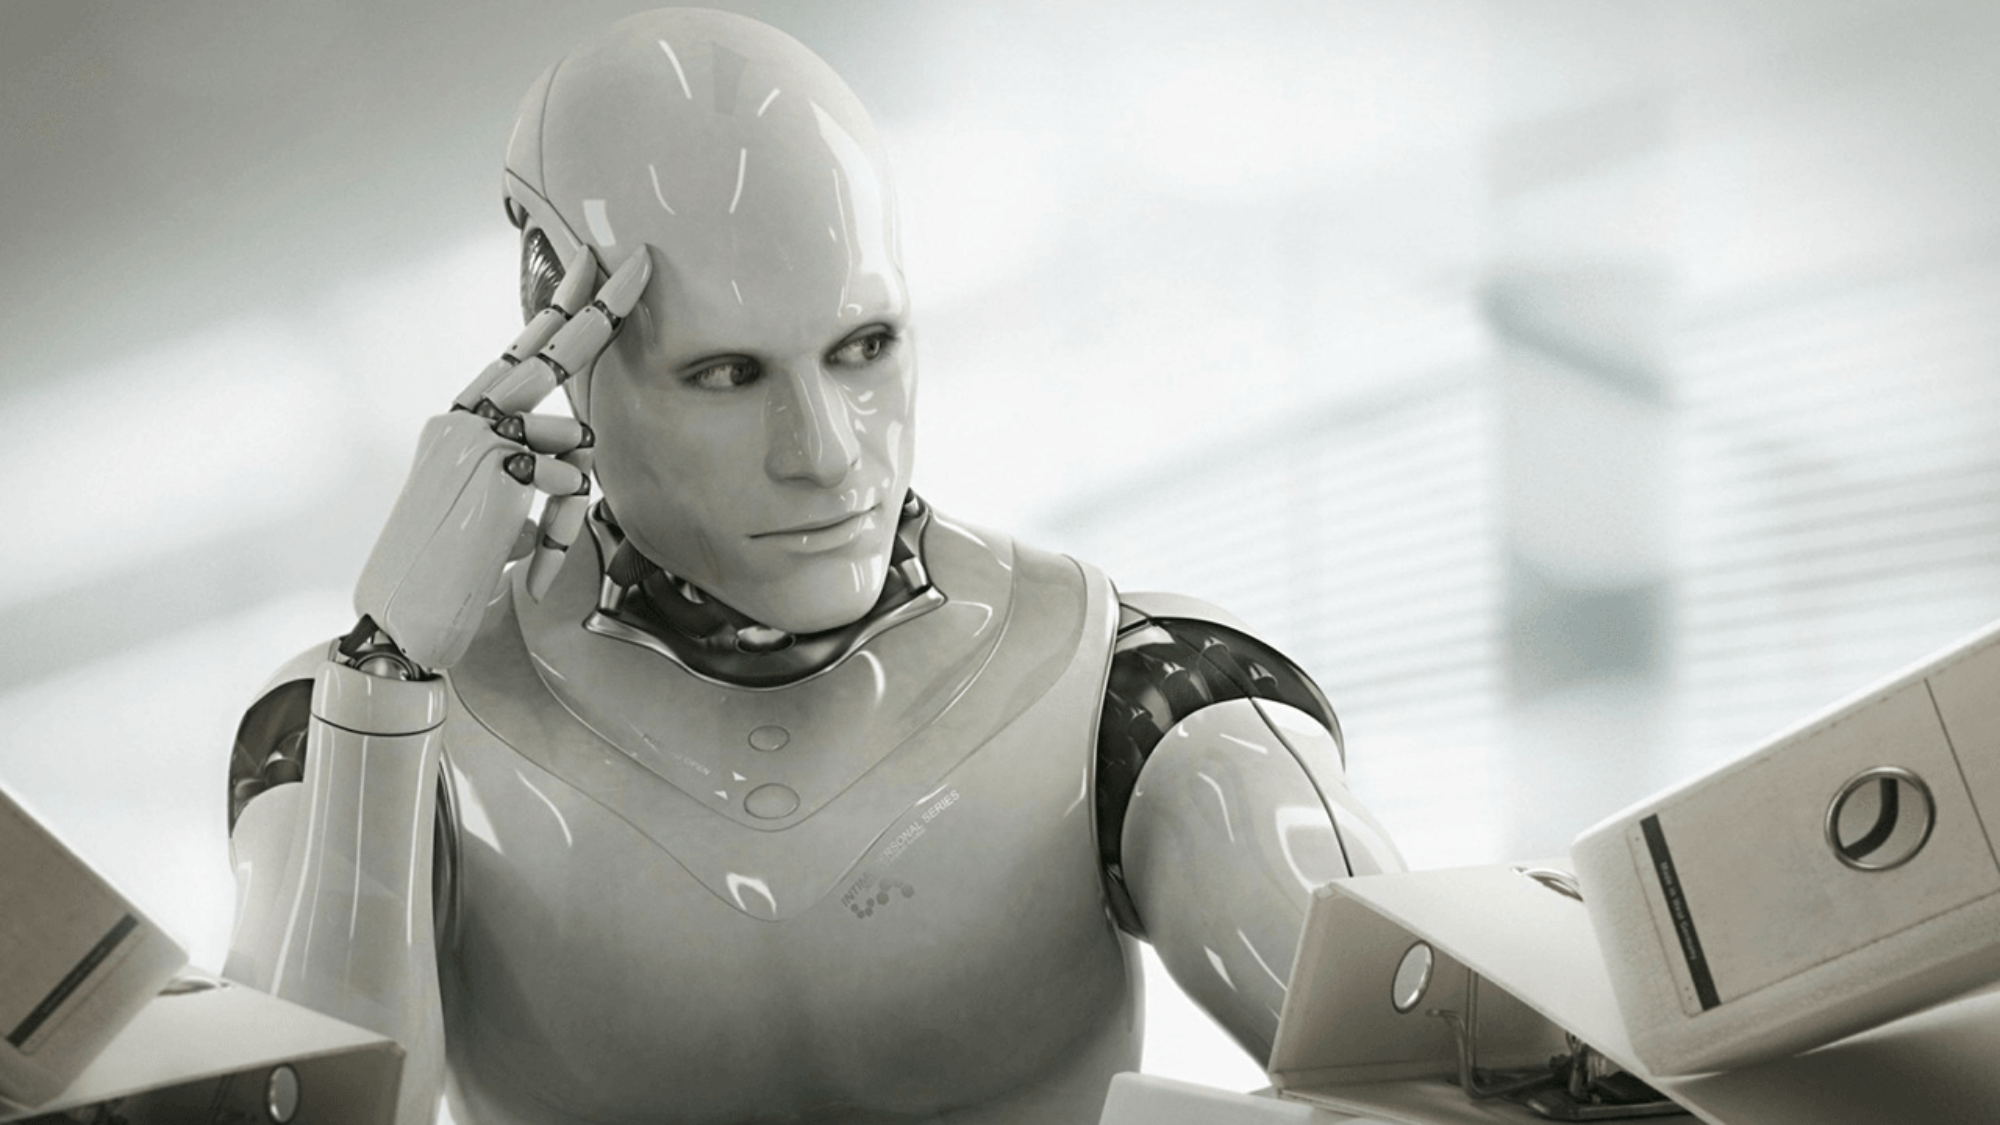 robots vs humans Robots are increasingly becoming a part of our daily life whether it is within our phones with siri, in our cars with gps navigation and voice command, or in our homes with home automation systems, we are all using some form of artificial intelligence.